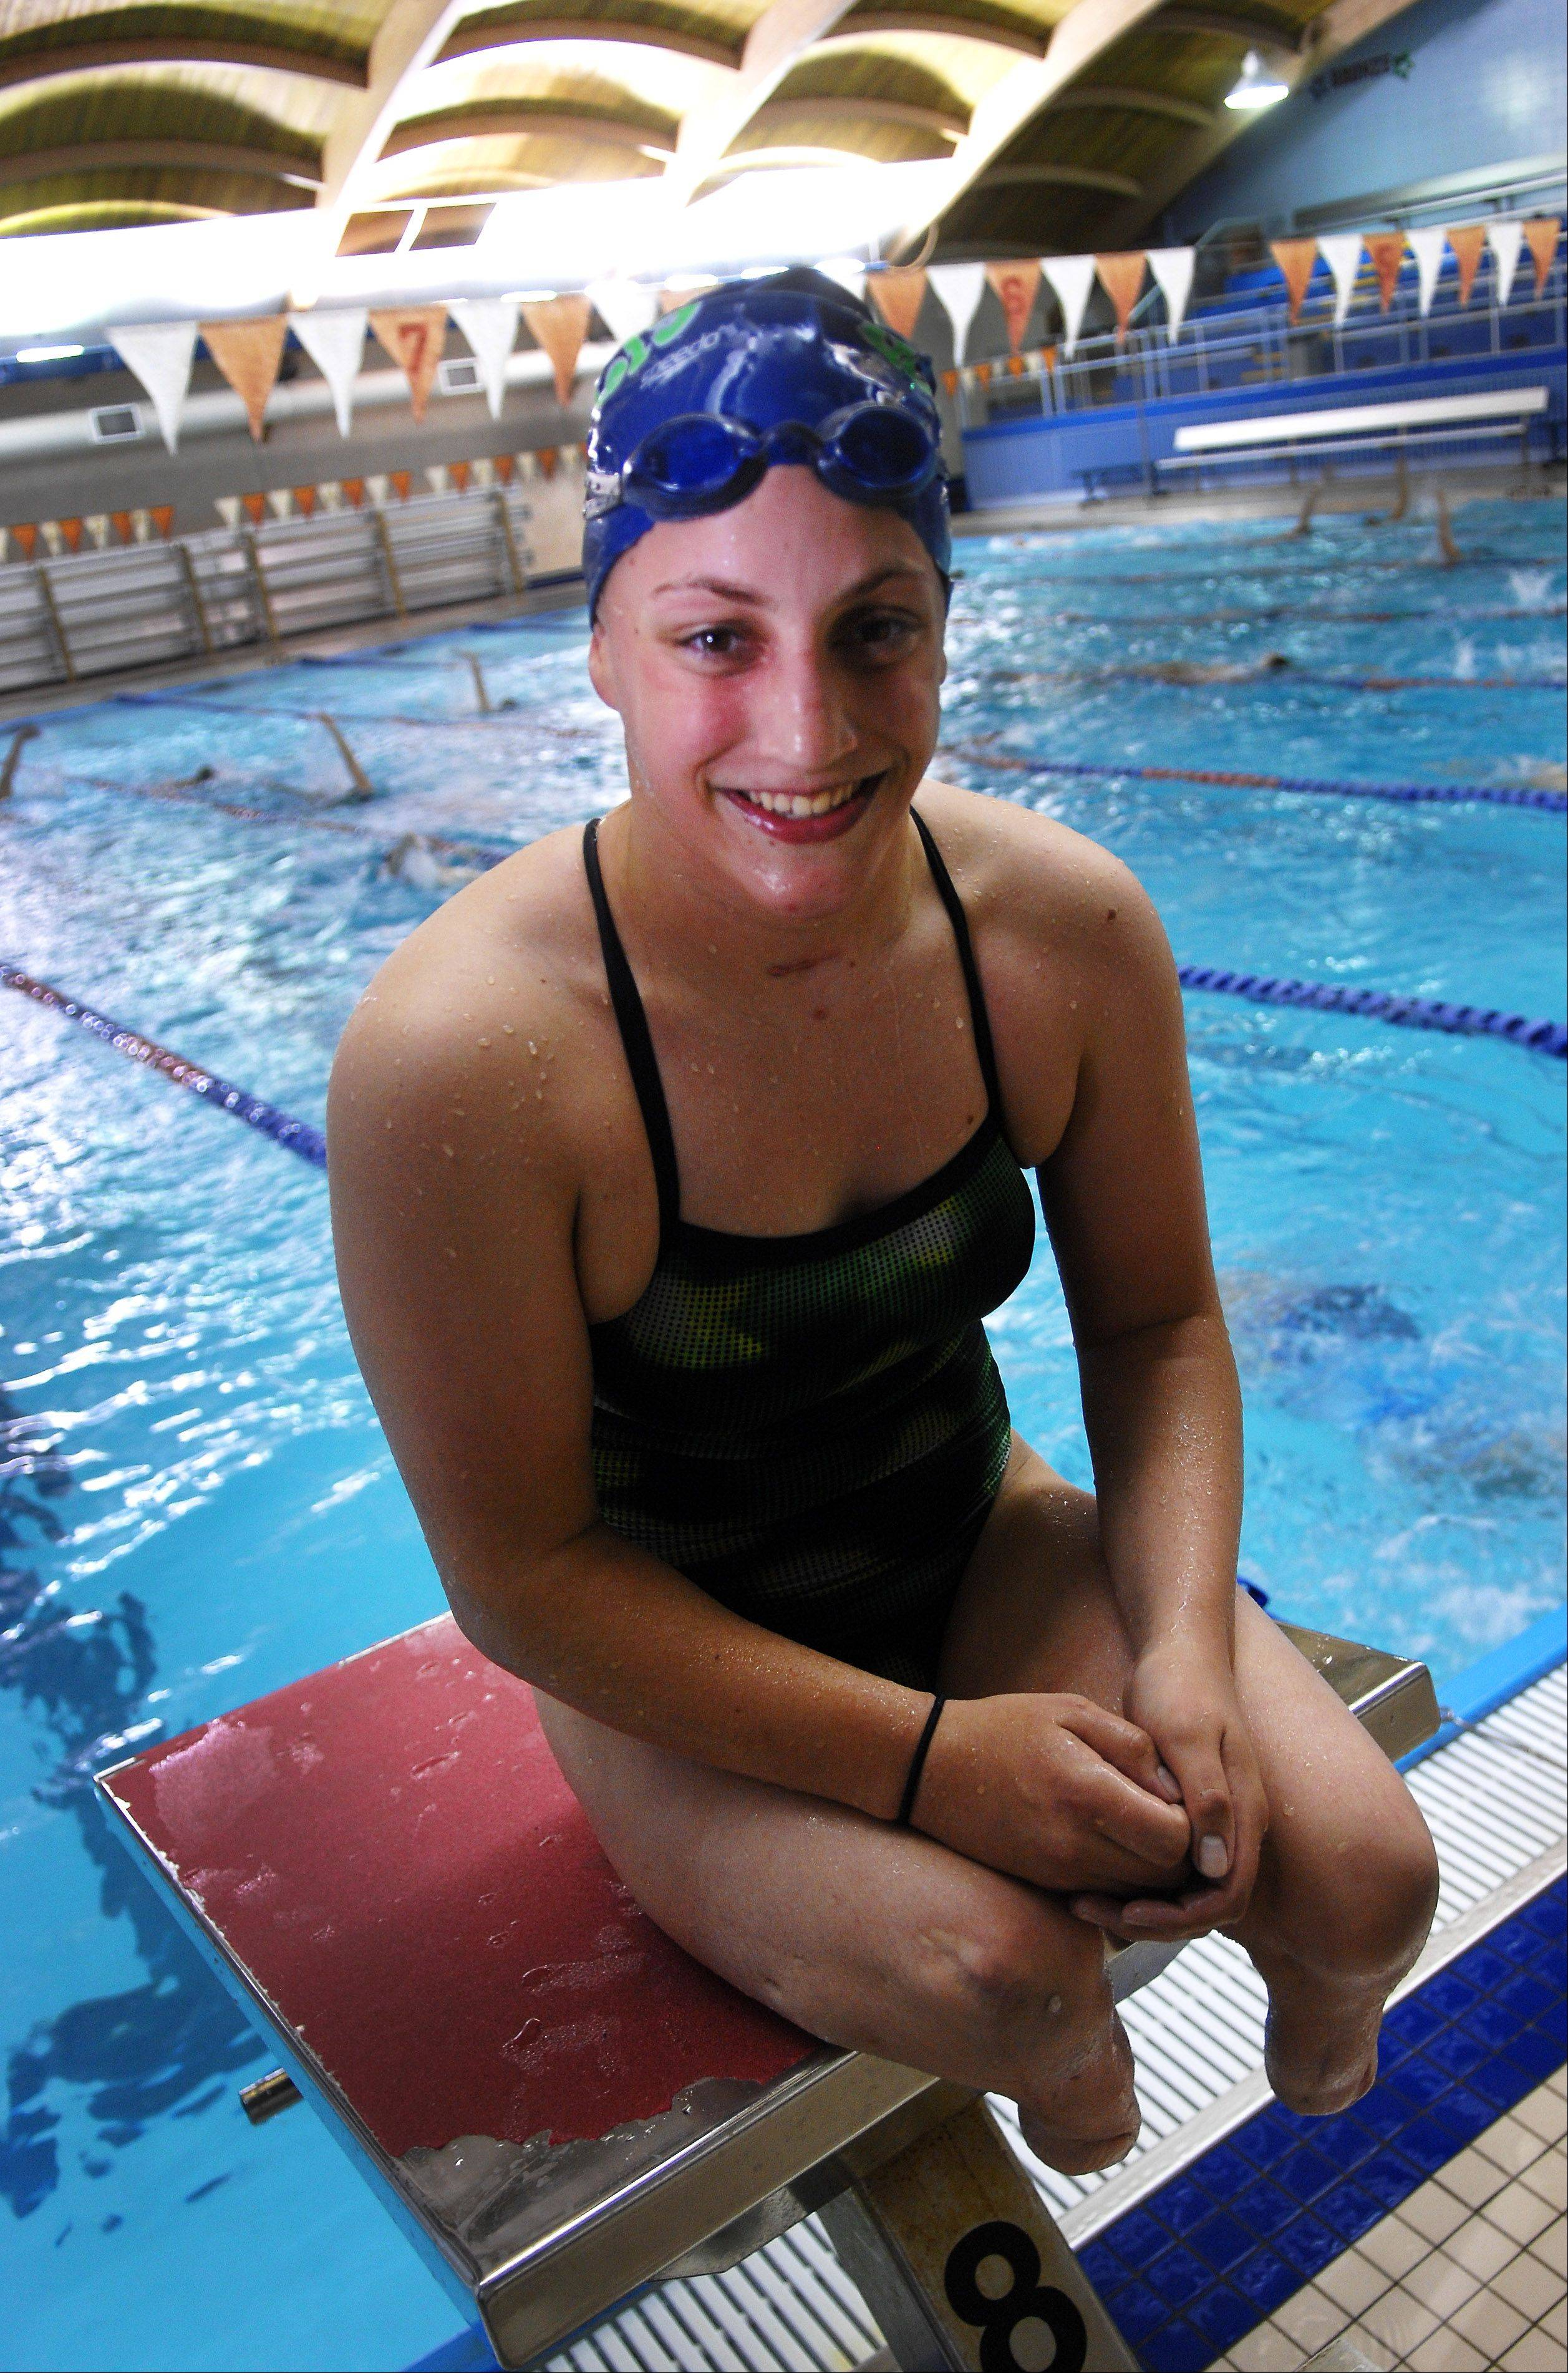 Swimmer Amy Chapman of Batavia will try to clinch a spot on Team USA for the Paralympic Games in London. She swims with the Academy Bullets Swim Club out of Aurora, where everyone sees her as an inspiration and model of perseverance.